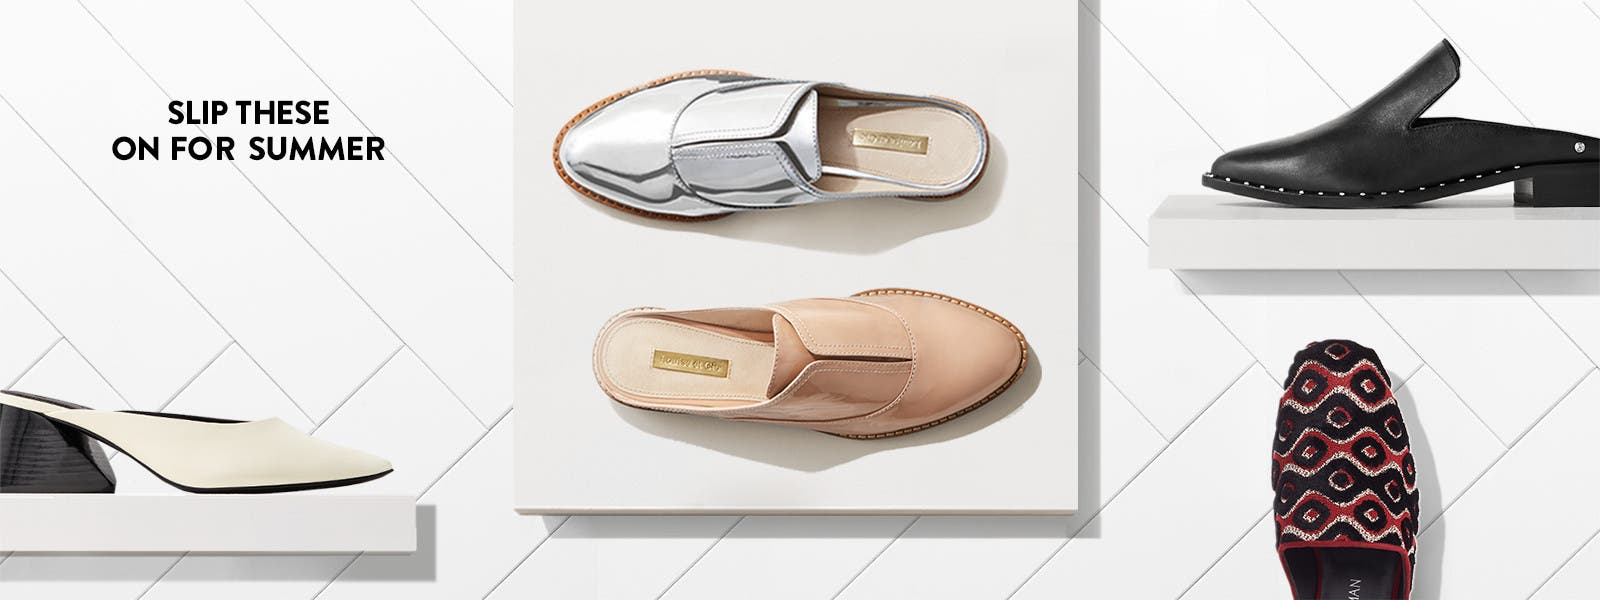 Slip these on for summer.